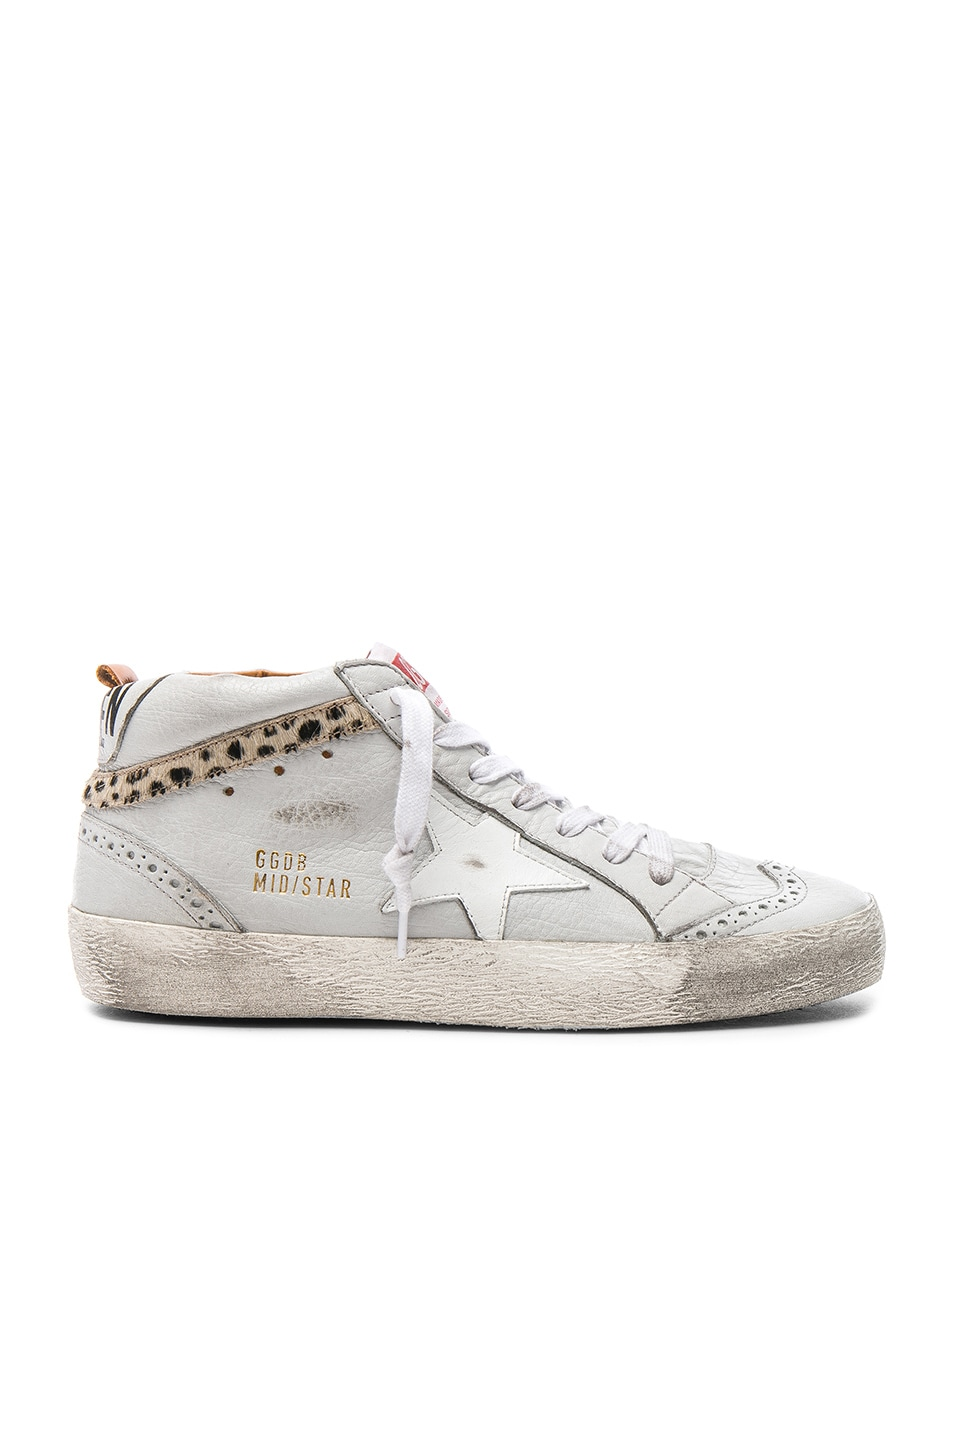 c07ebda62 Image 1 of Golden Goose Leather Mid Star Sneakers With Cow Hair in Ice & Leo